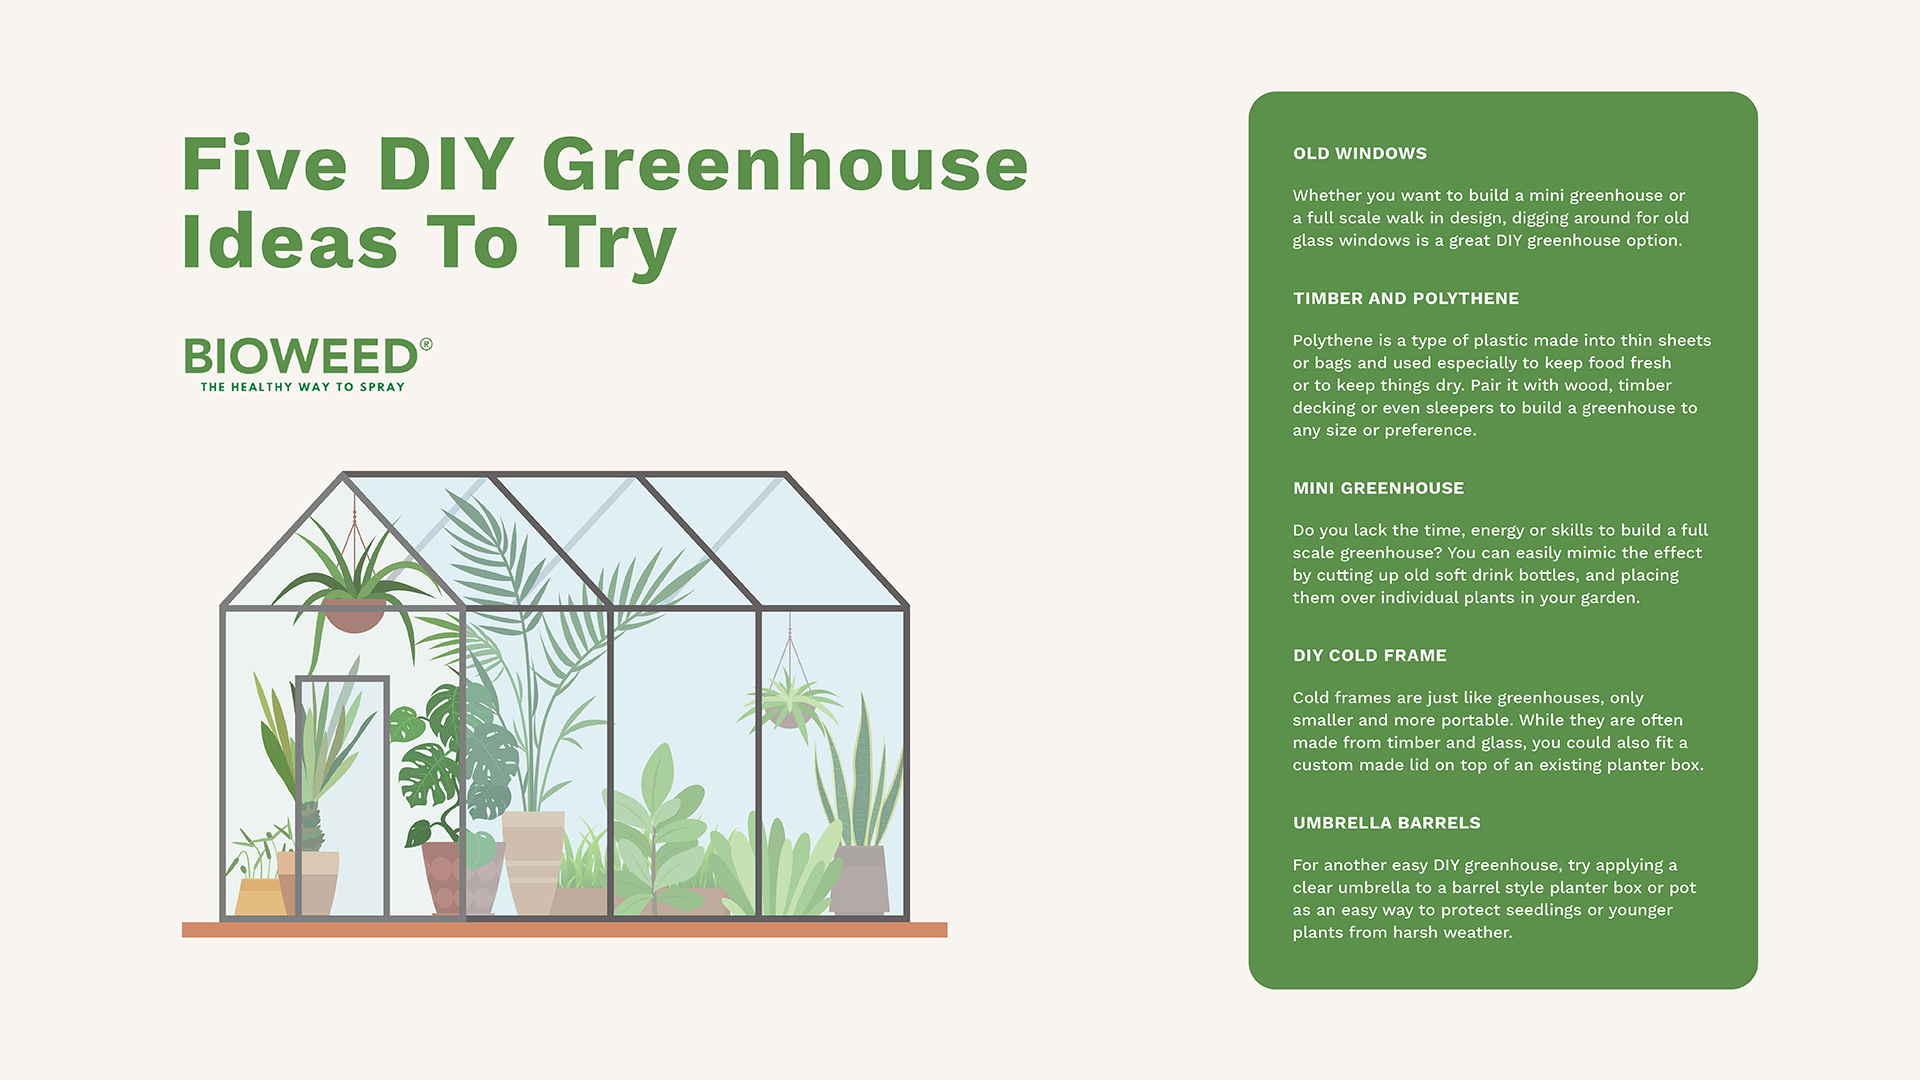 Building-A-DIY-Greenhouse-At-Home3